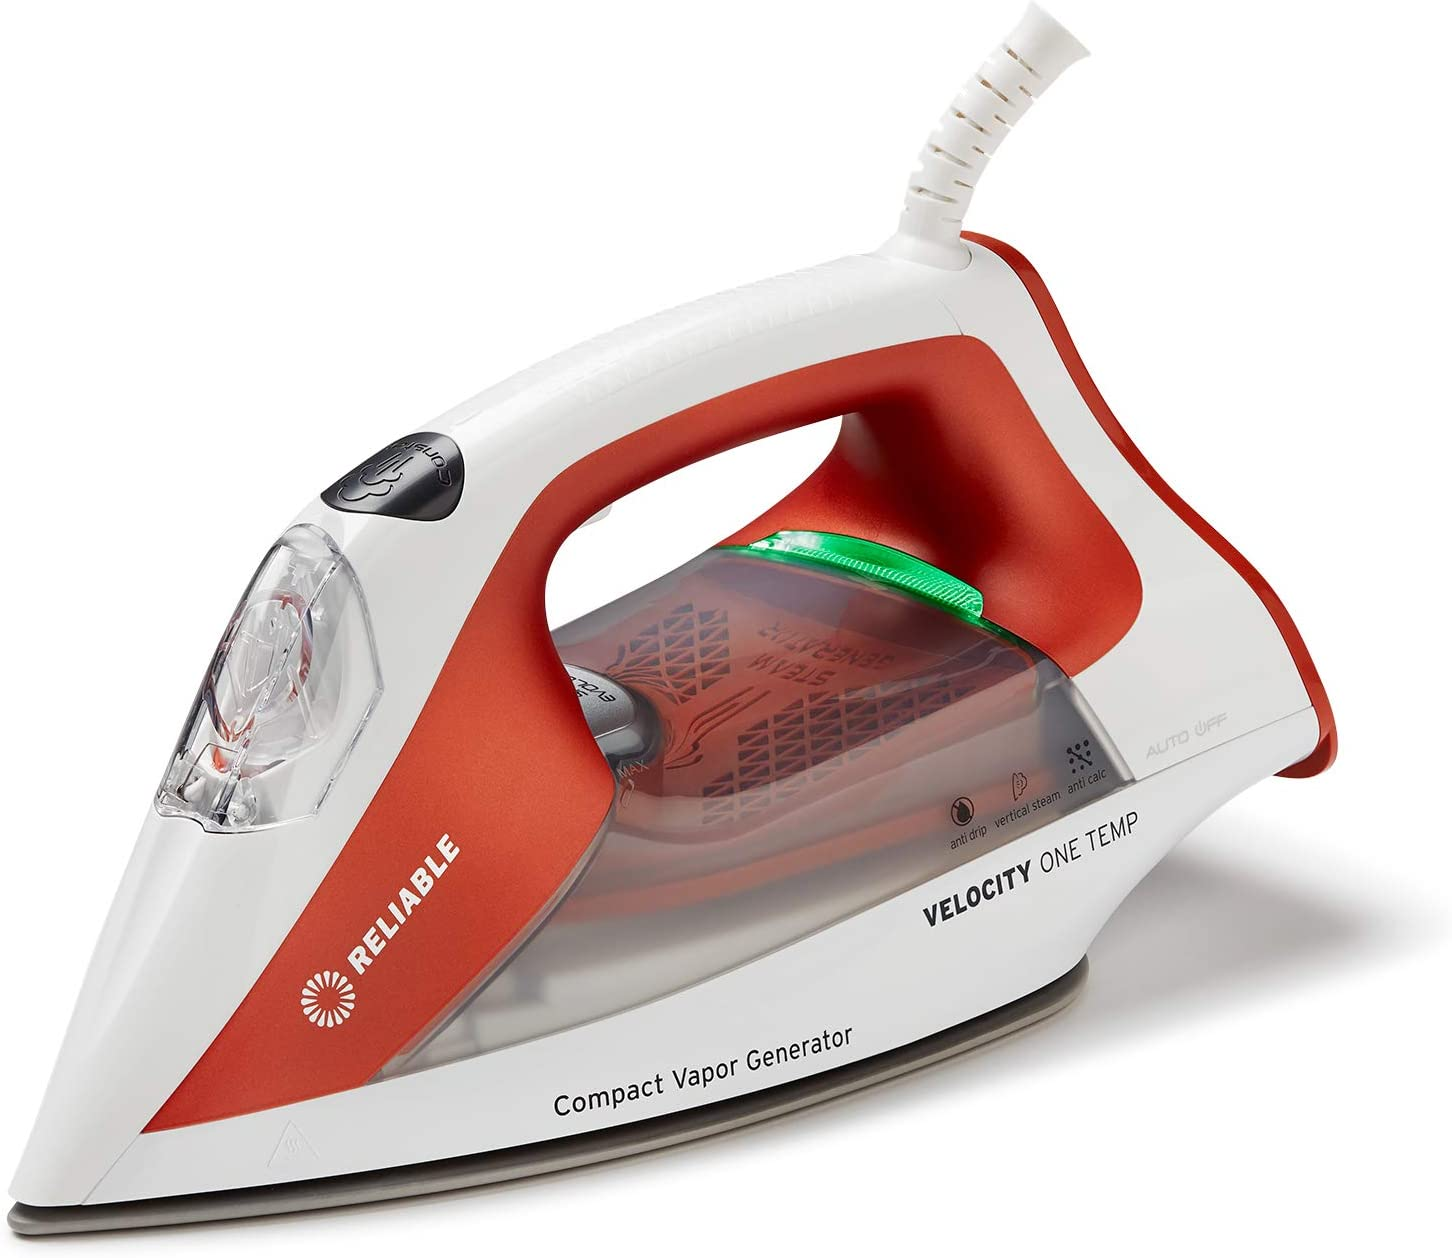 Reliable Velocity 160IR Steam Iron - One-Temperature Compact Vapor Generator Steam Iron, Anti Shine Coated Ceramic Soleplate, Patented Technology for Continuous Steam, Zero Leaks, Perfect Temperature